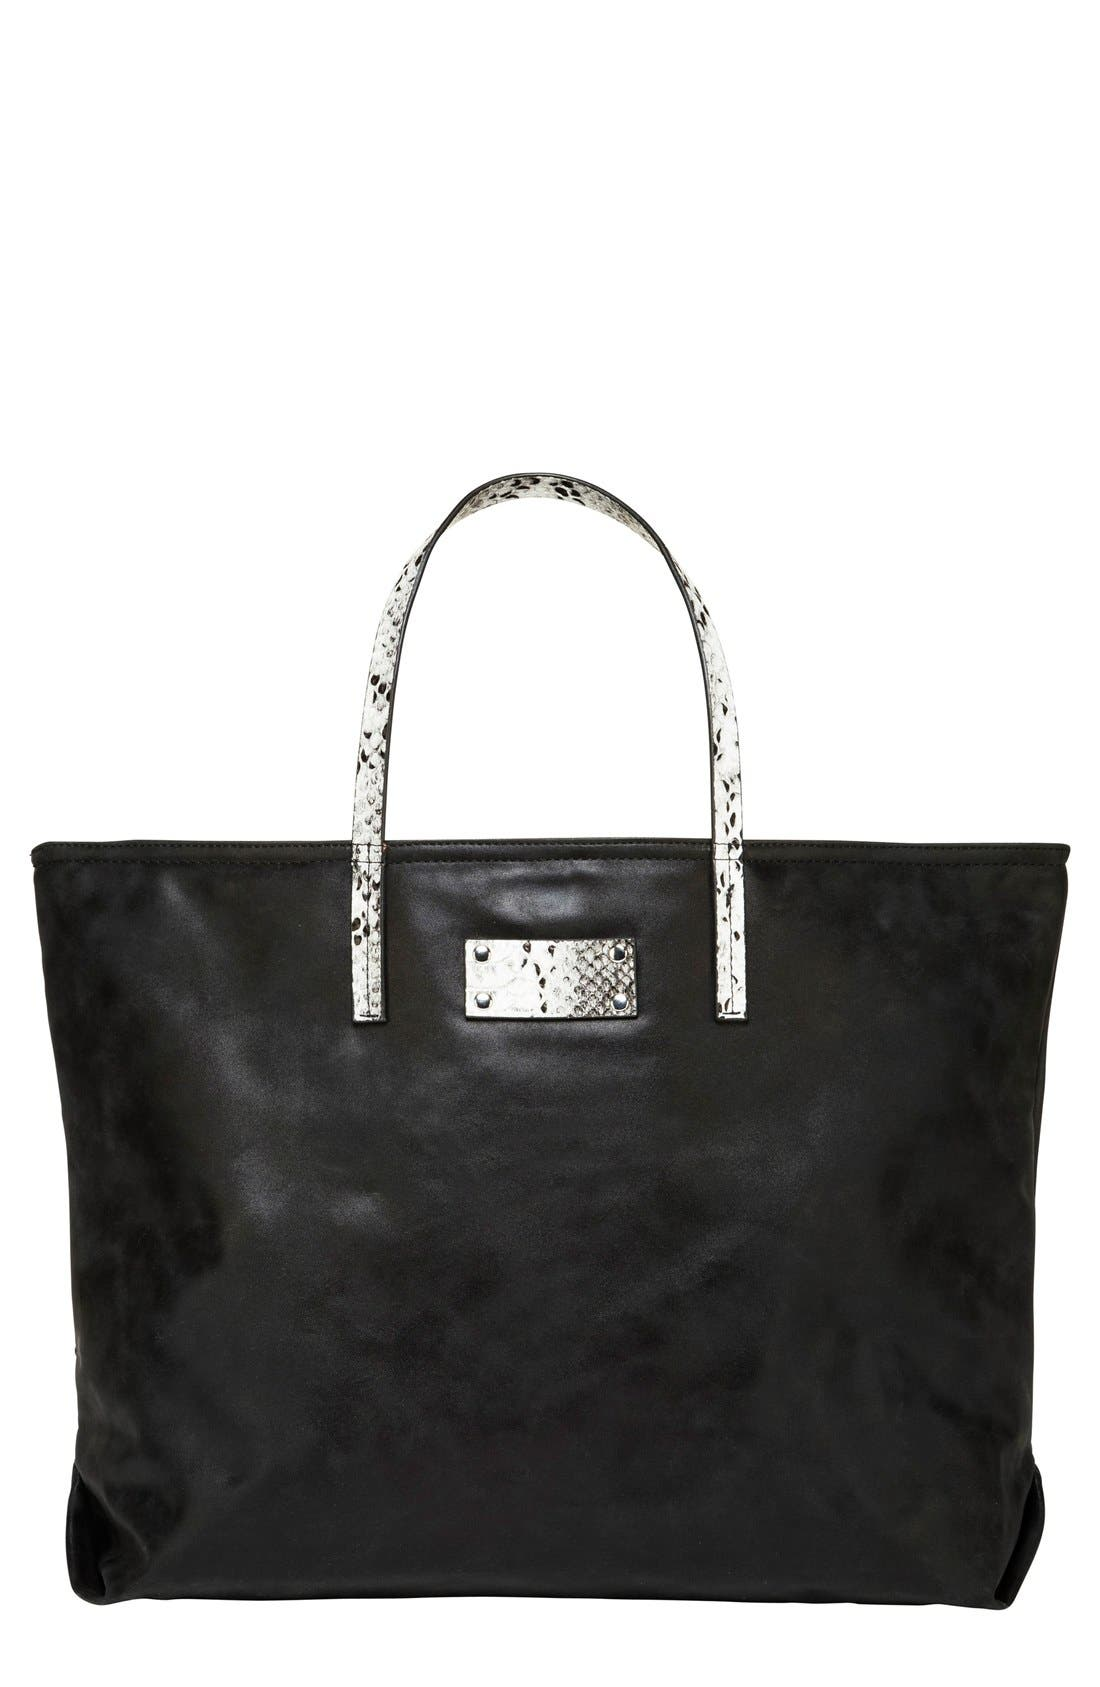 Sun Valley Vegan Leather Tote,                         Main,                         color, Black